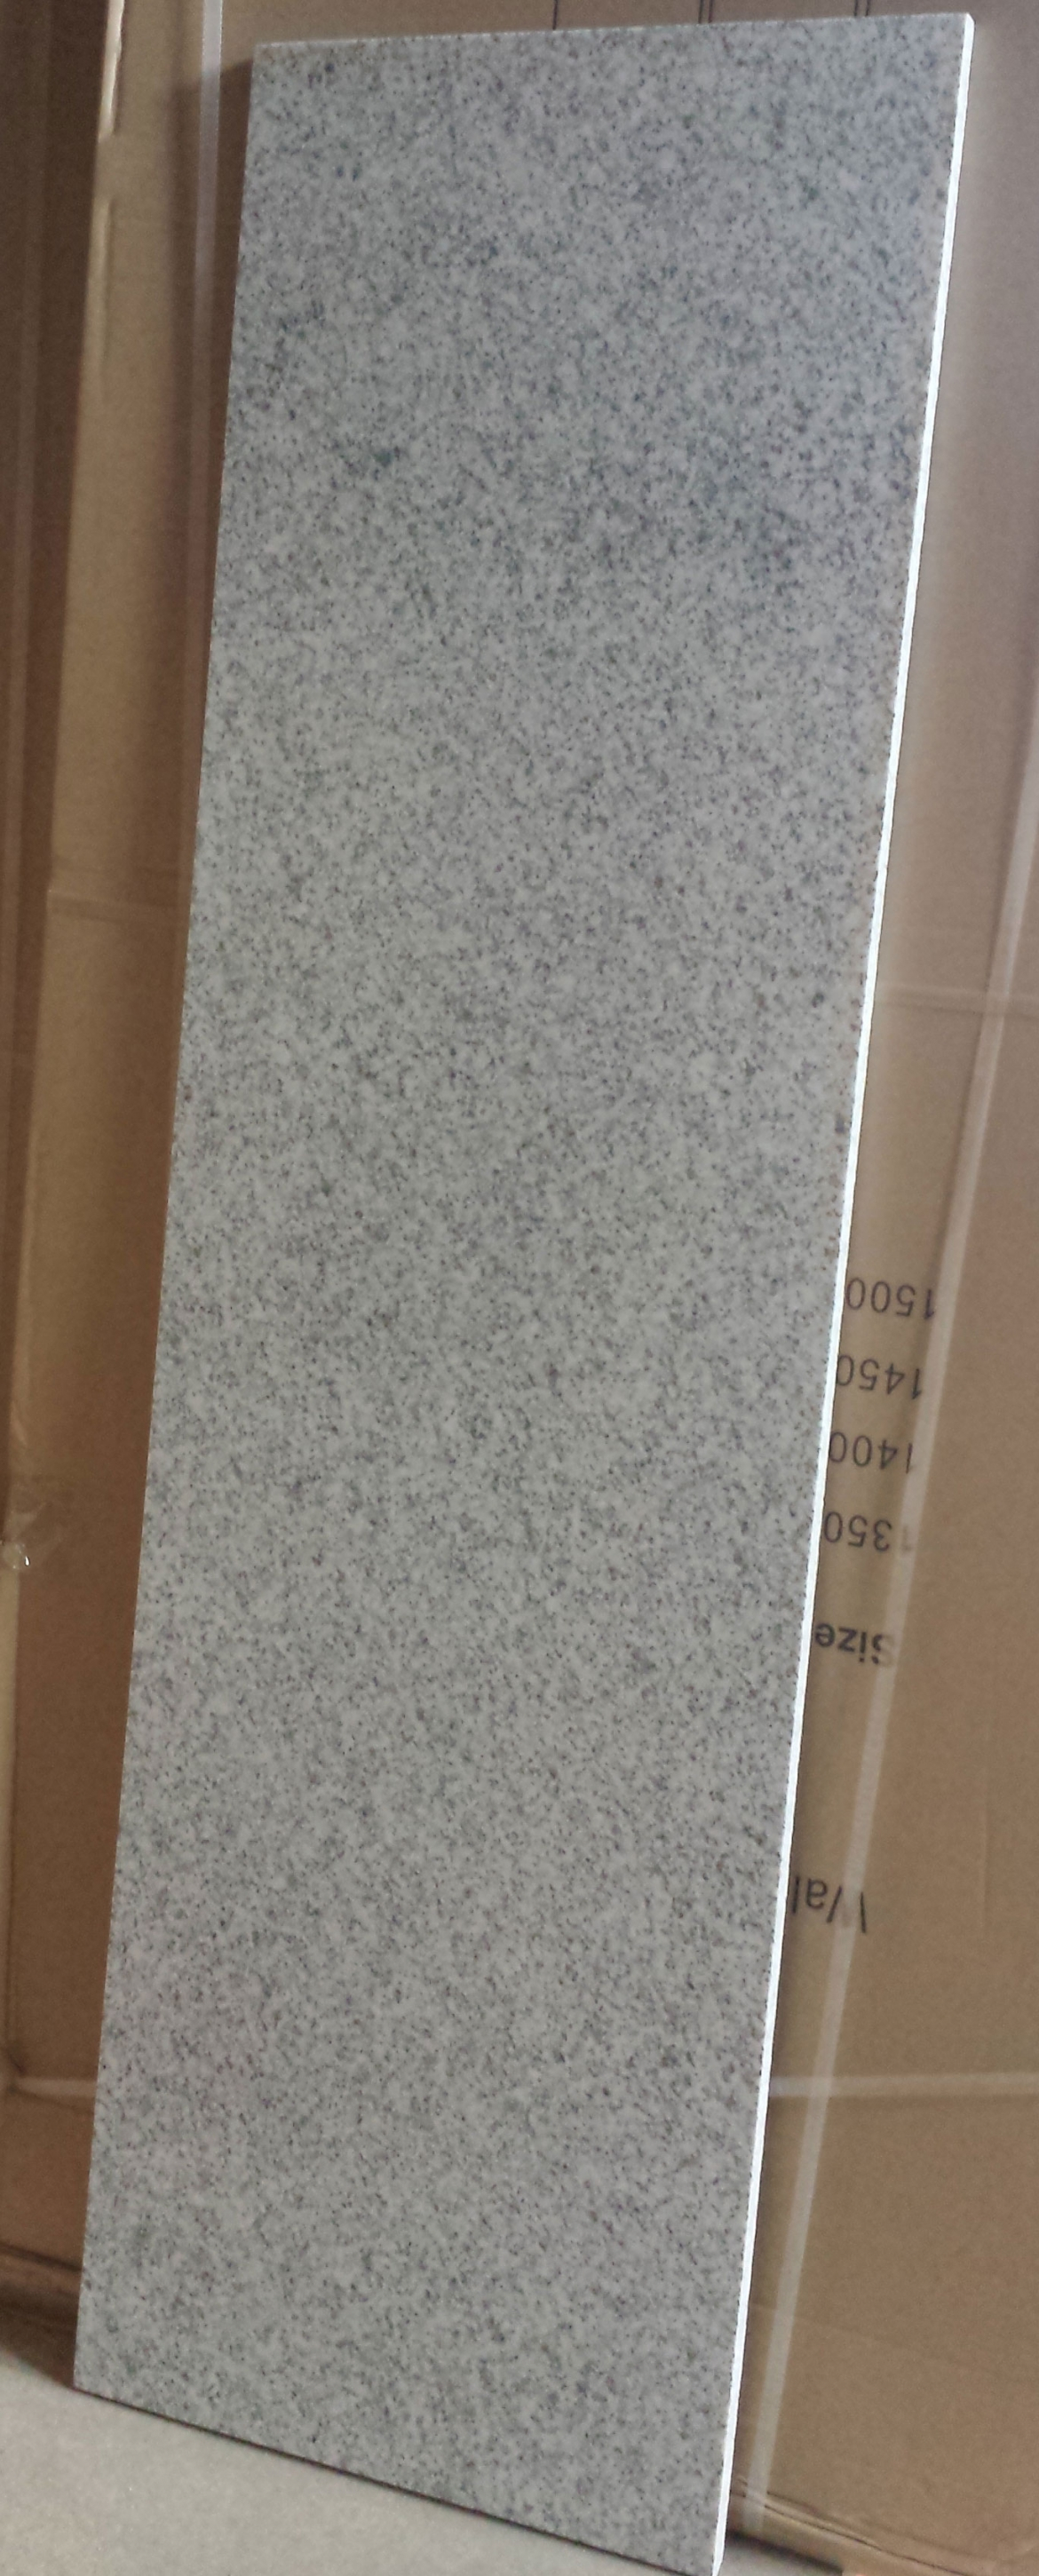 Black/White Granite Bench top for bathroom vanity [1300×470 mm]